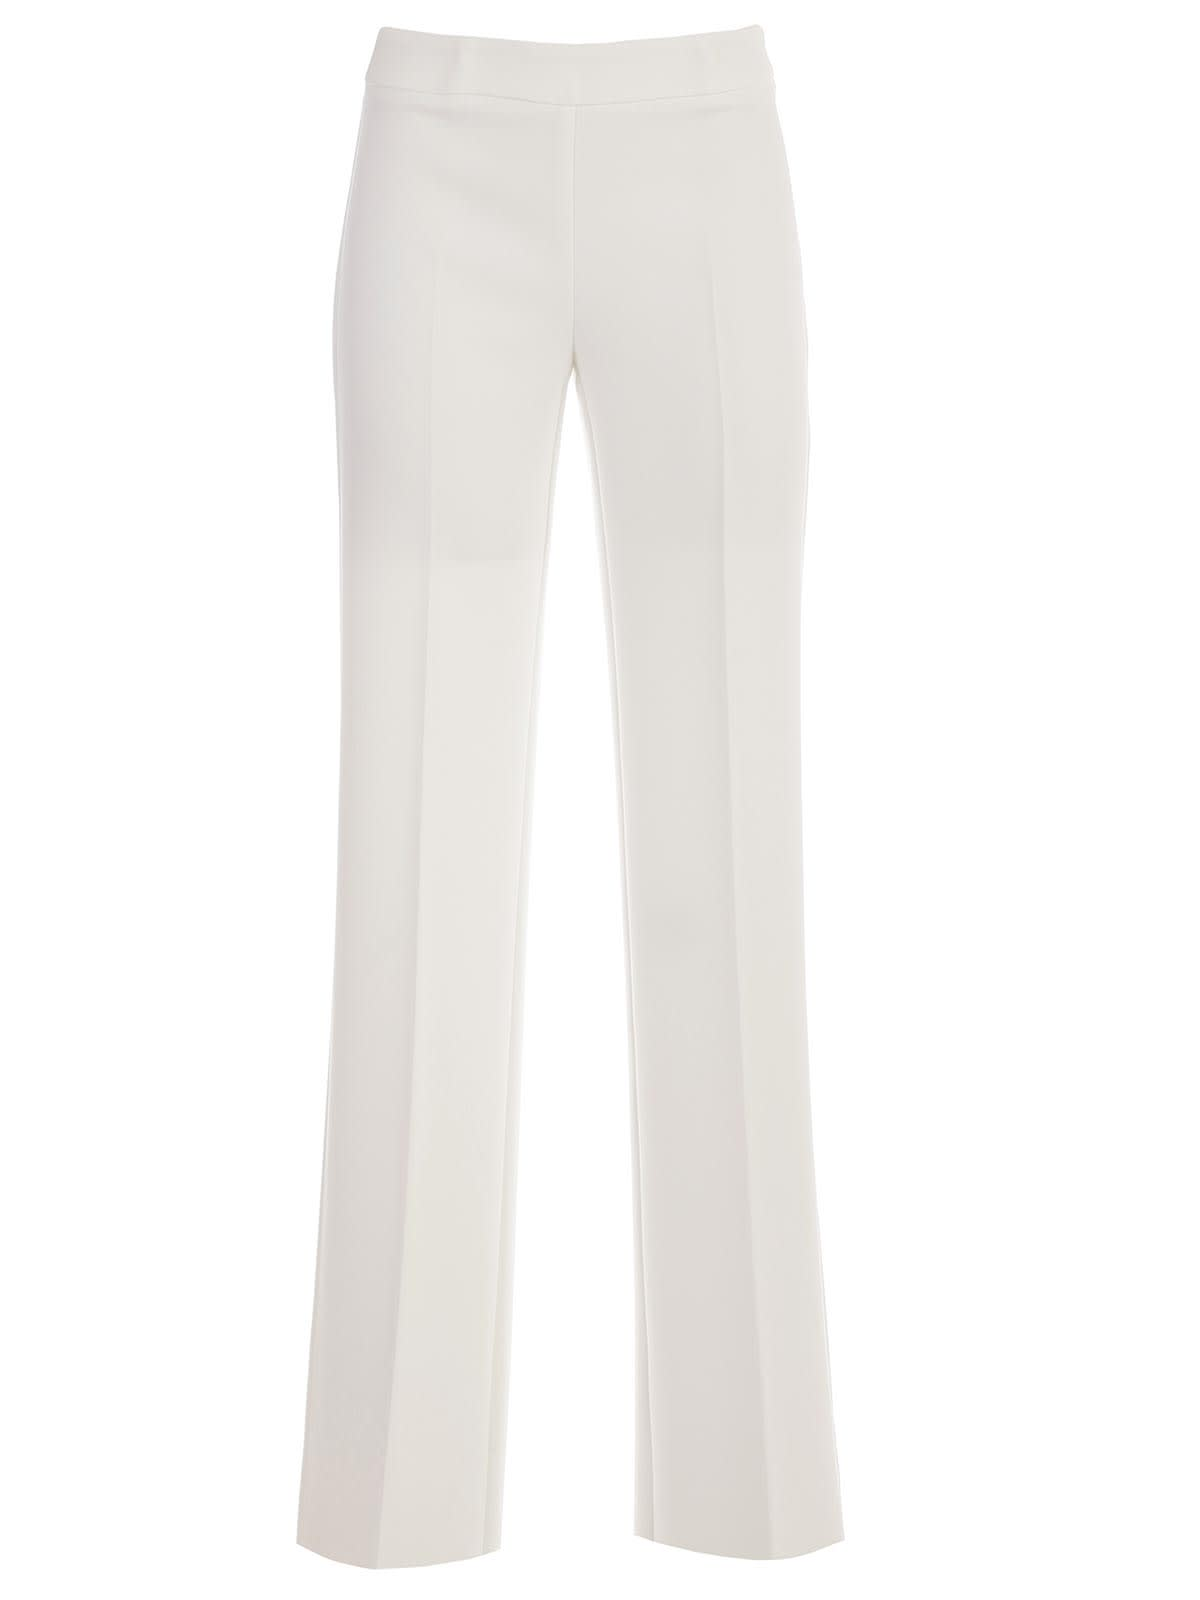 Wide Leg Trousers from A.R.O.H. : Cream Wide Leg Trousers with elasticated waistband, regular length and concealed side zip fastening